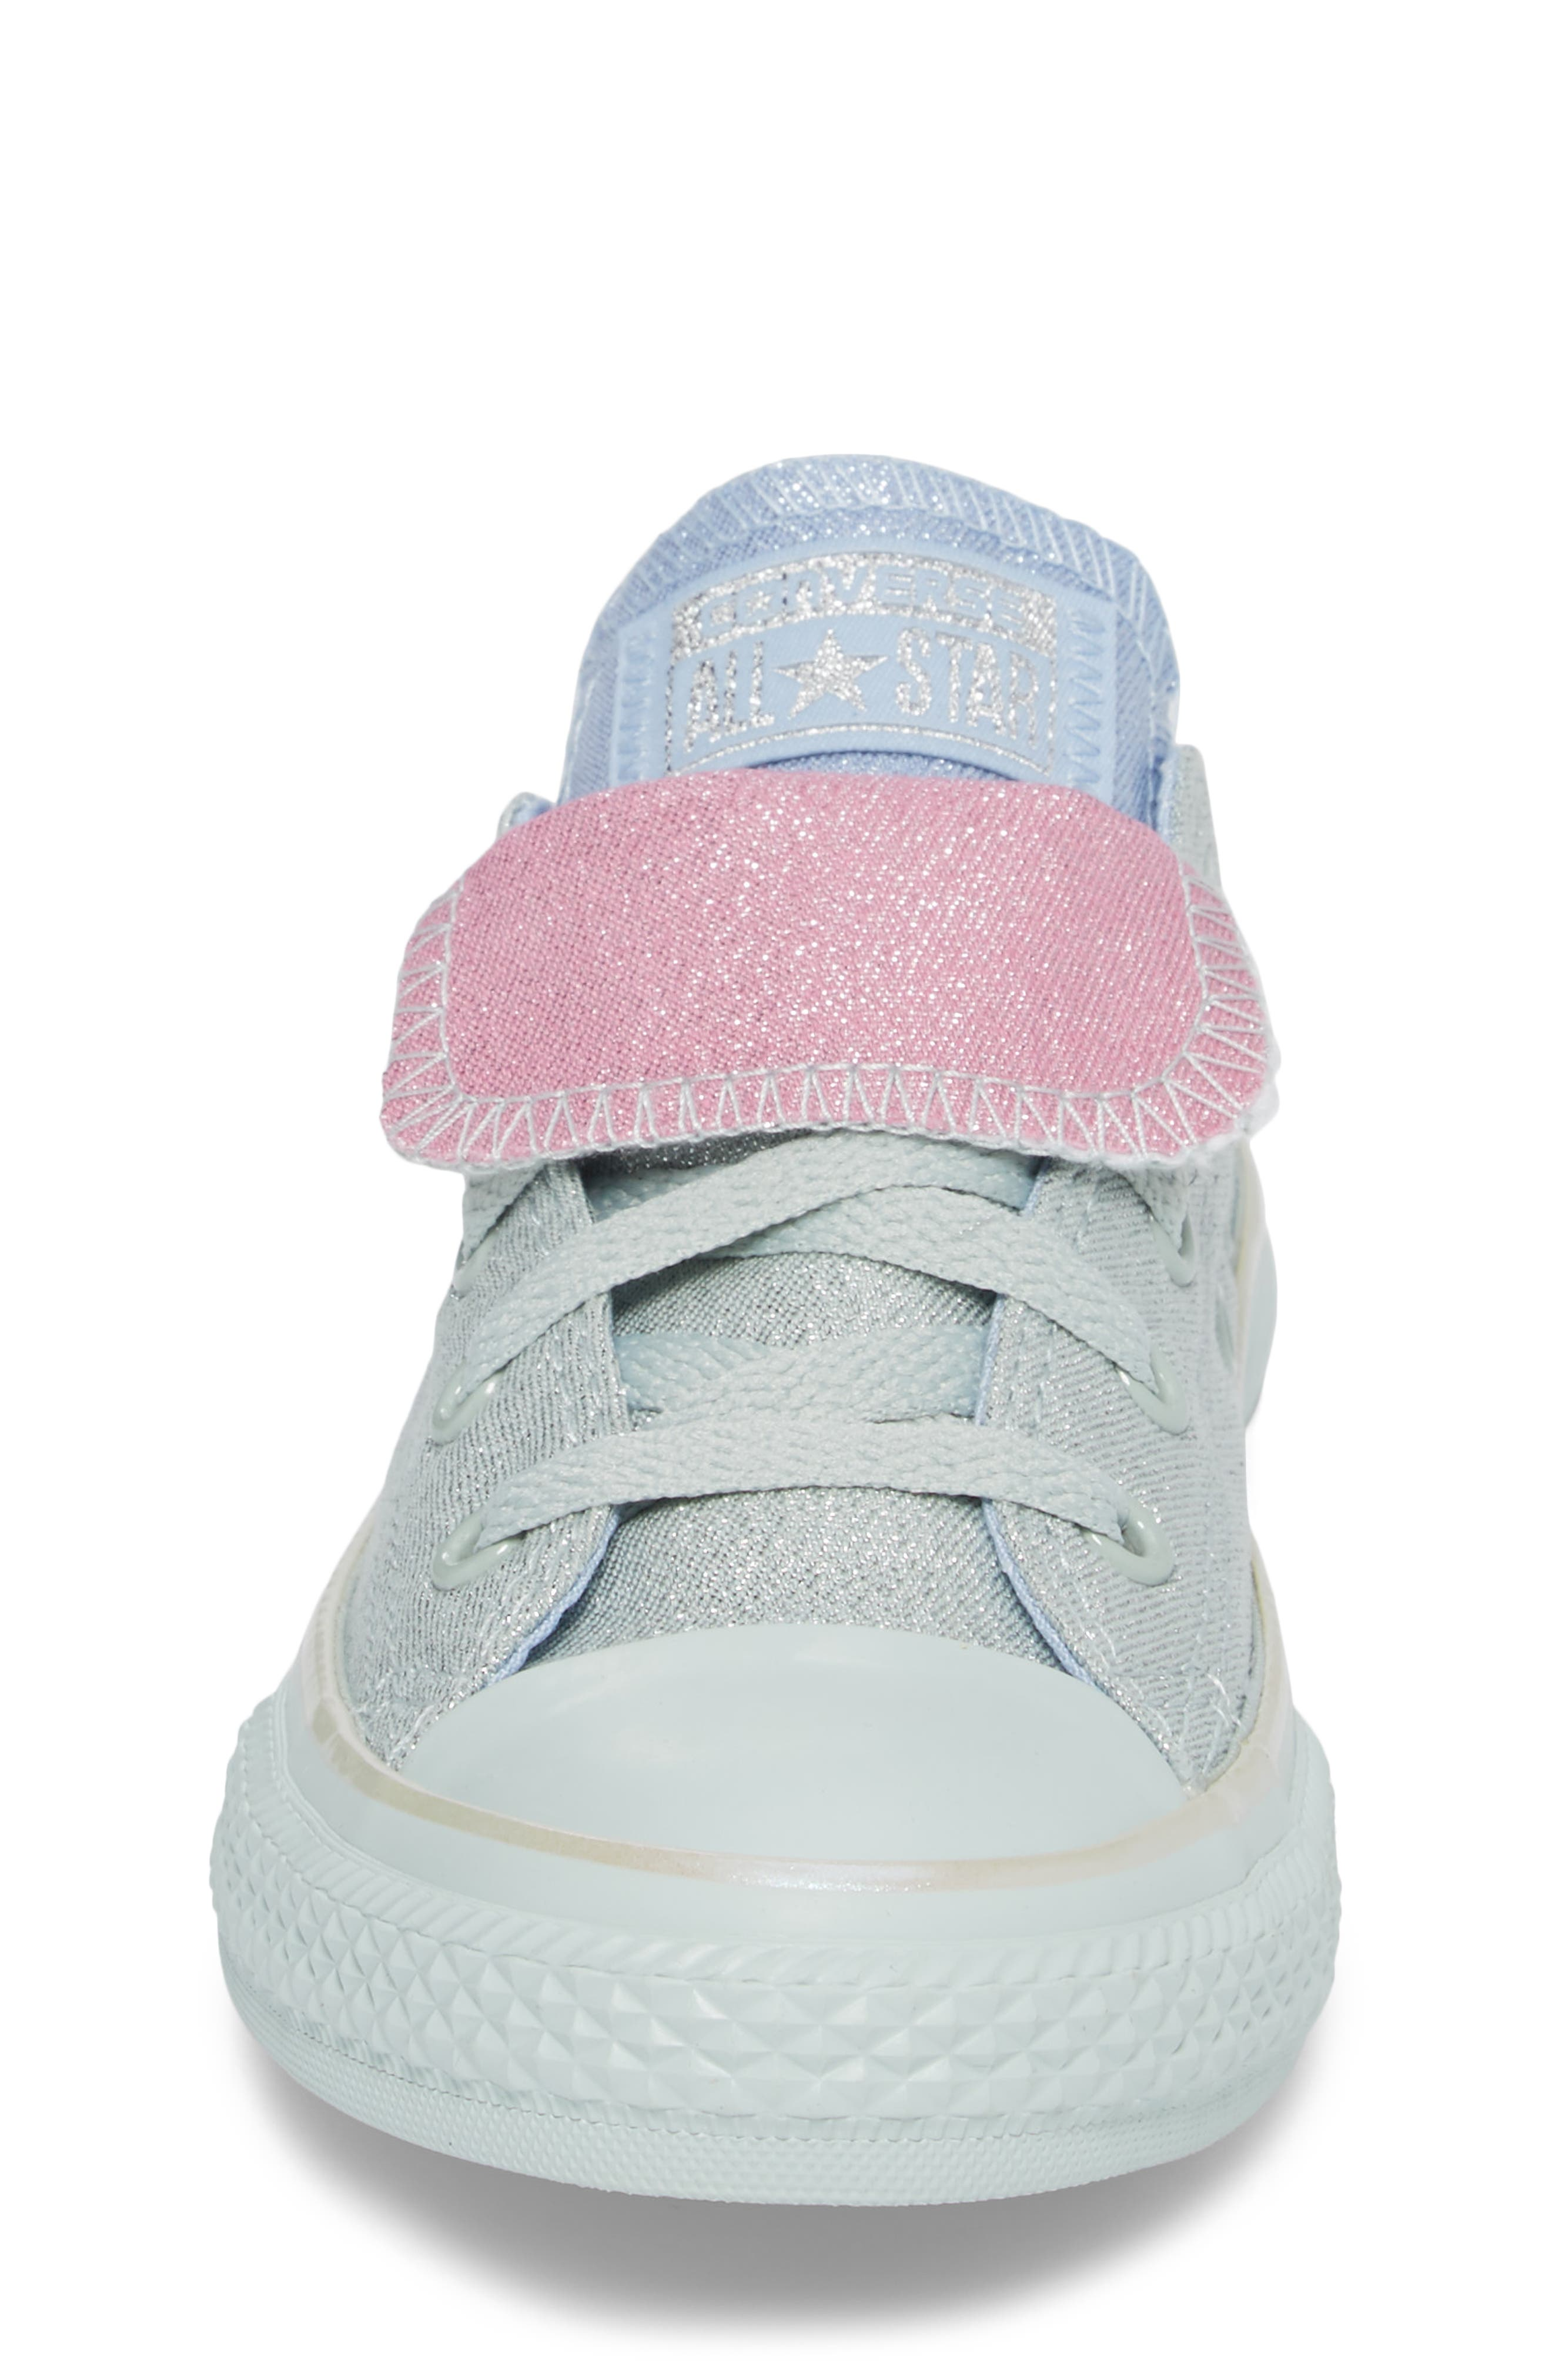 All Star<sup>®</sup> Shimmer Double Tongue Sneaker,                             Alternate thumbnail 4, color,                             301